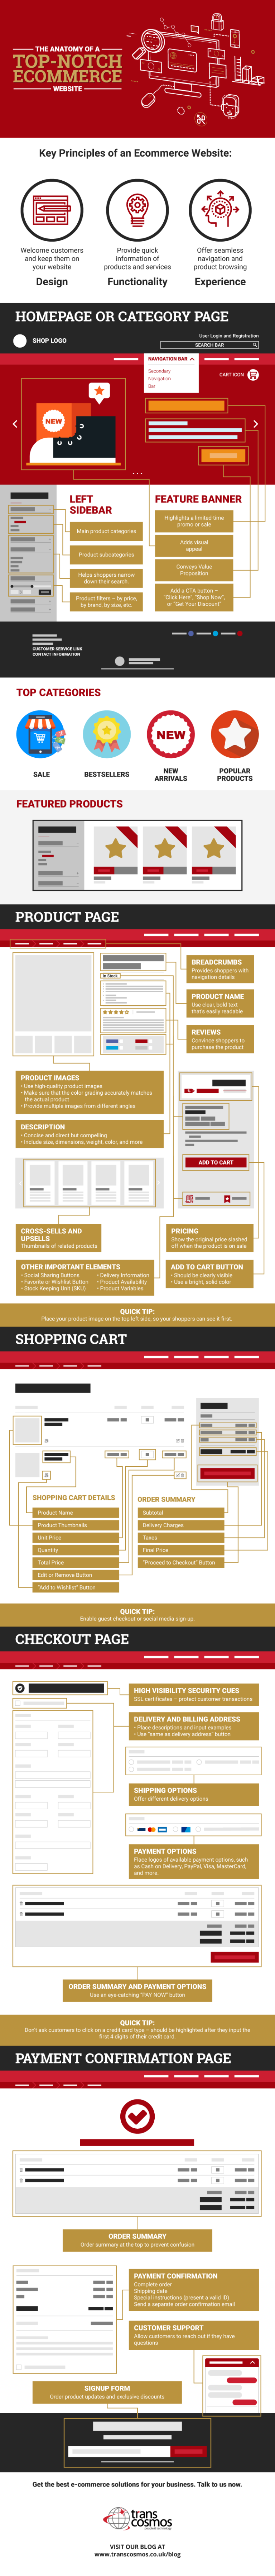 The Anatomy of an Ecommerce Website - Infographic